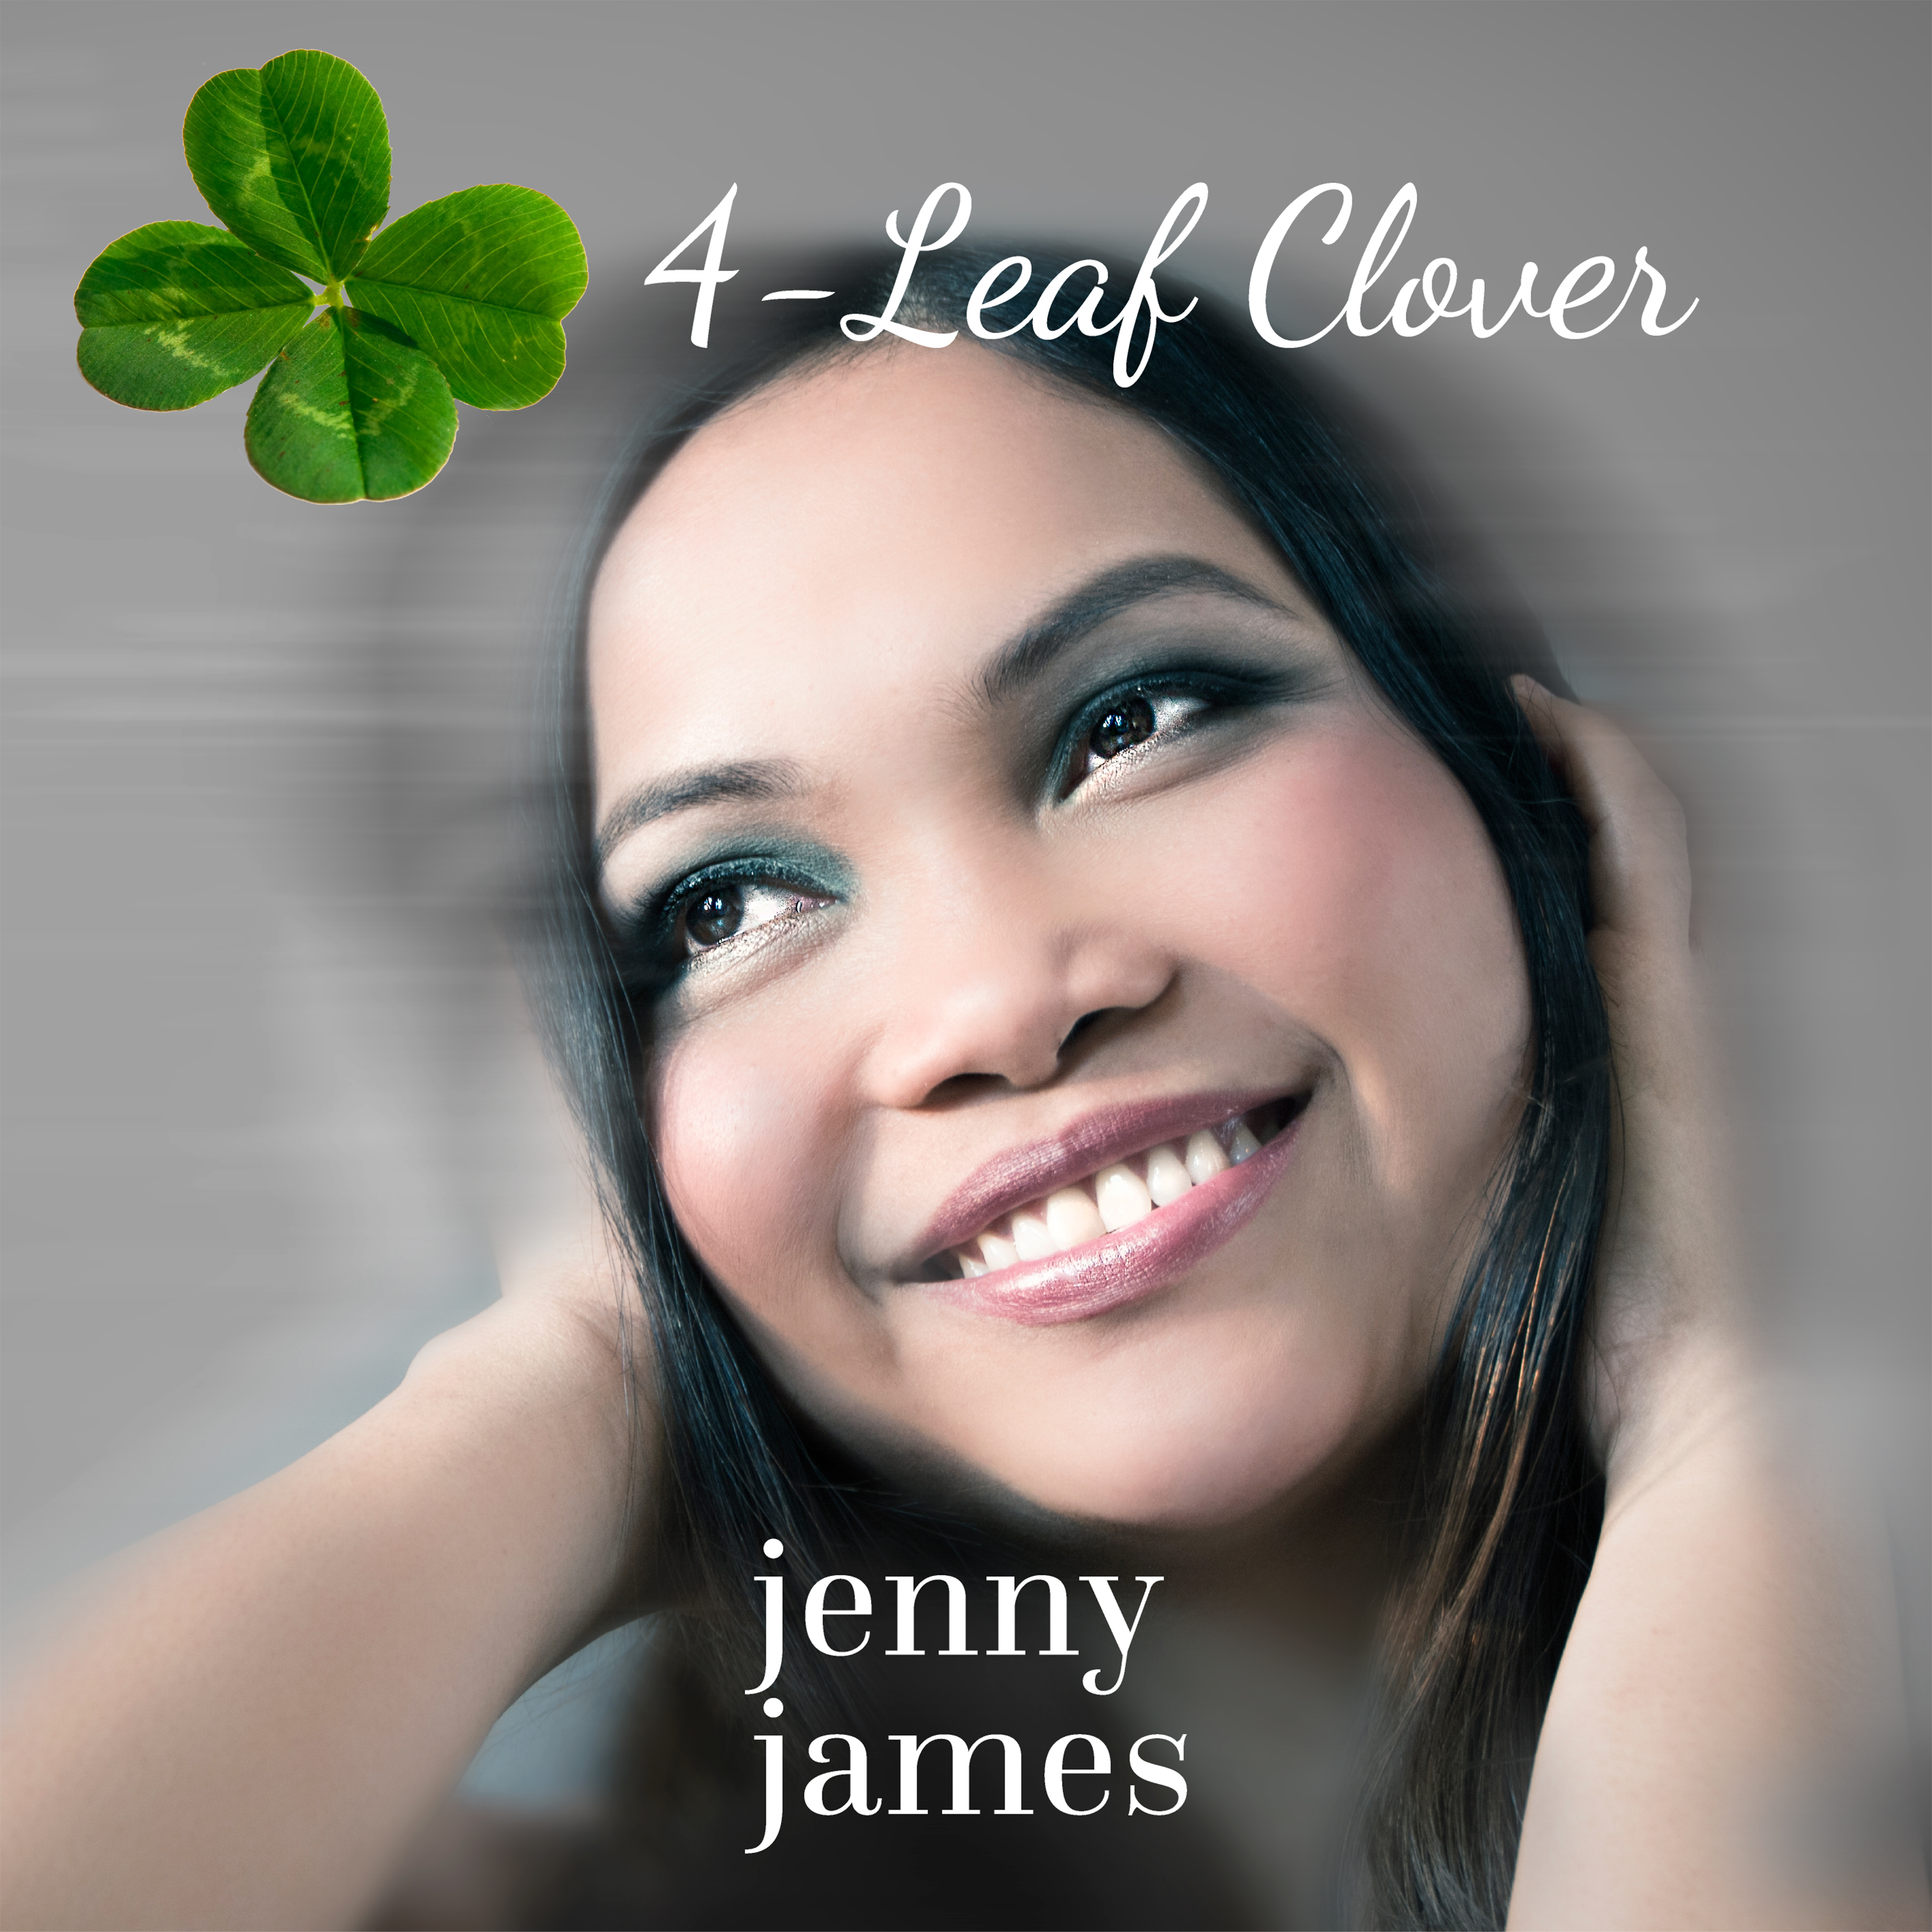 4-Leaf Clover by Jenny James